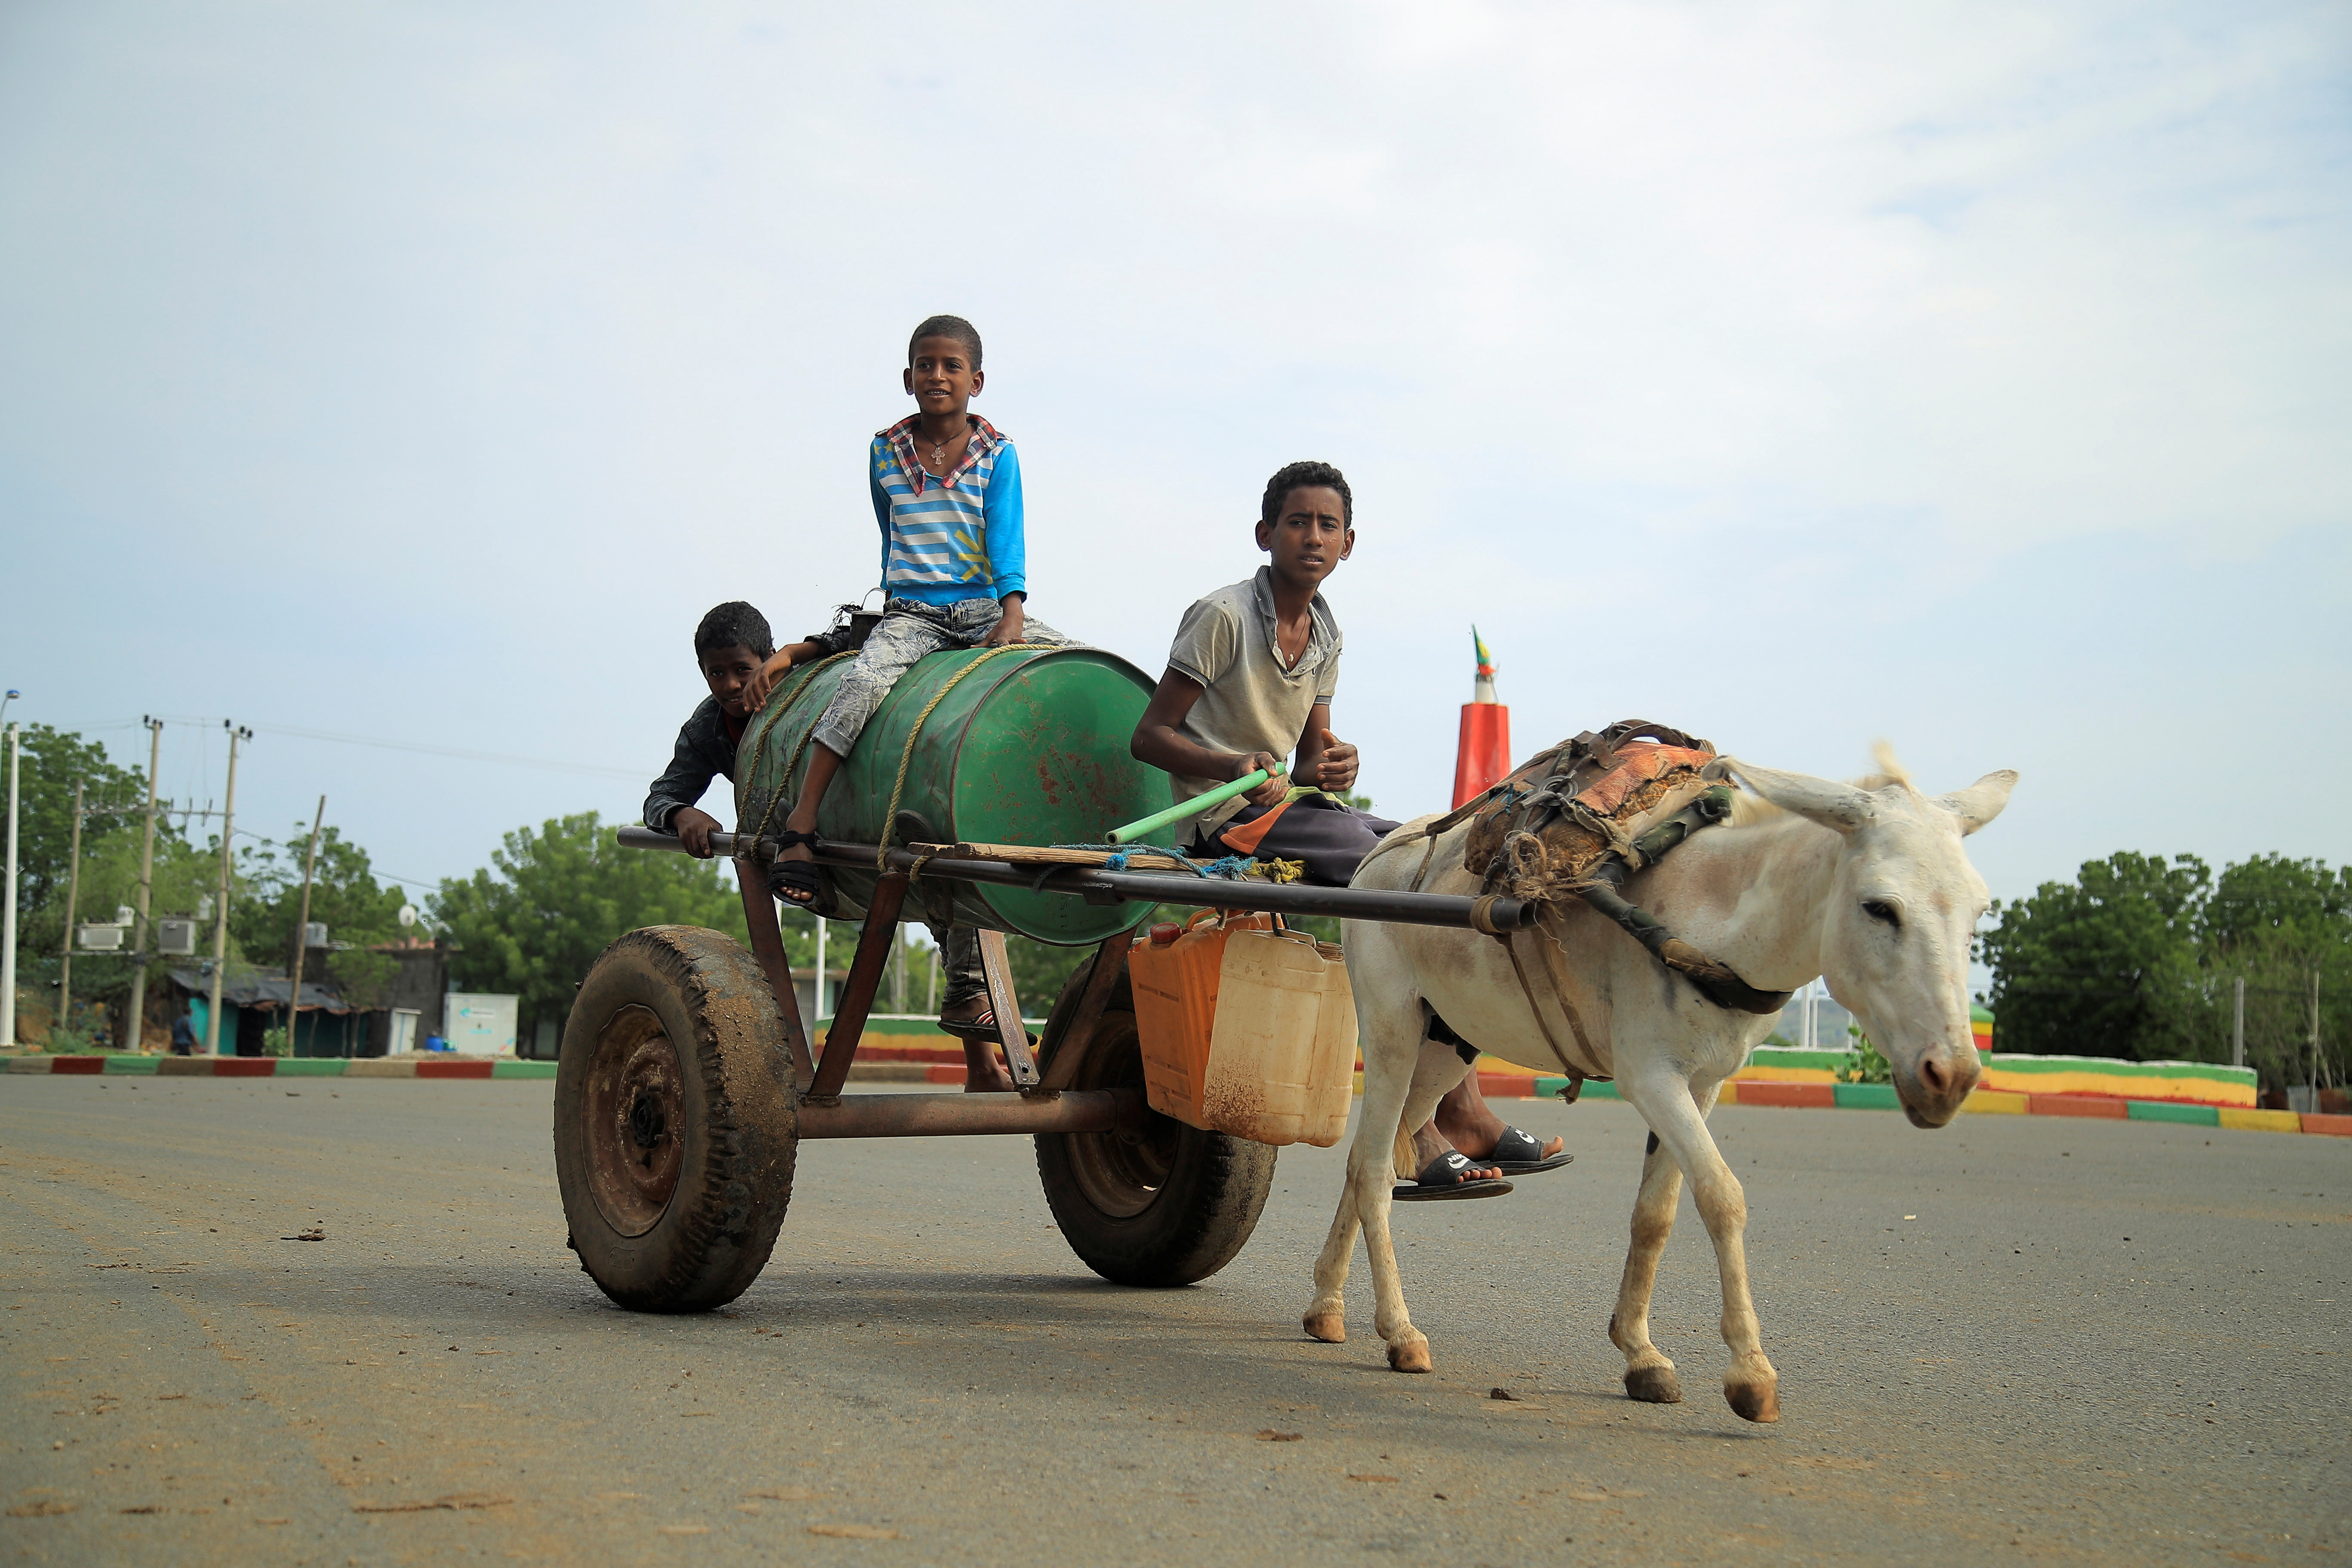 Civilians ride a cart along a street in Humera town, Ethiopia July 1, 2021. Picture taken July 1, 2021. REUTERS/Stringer